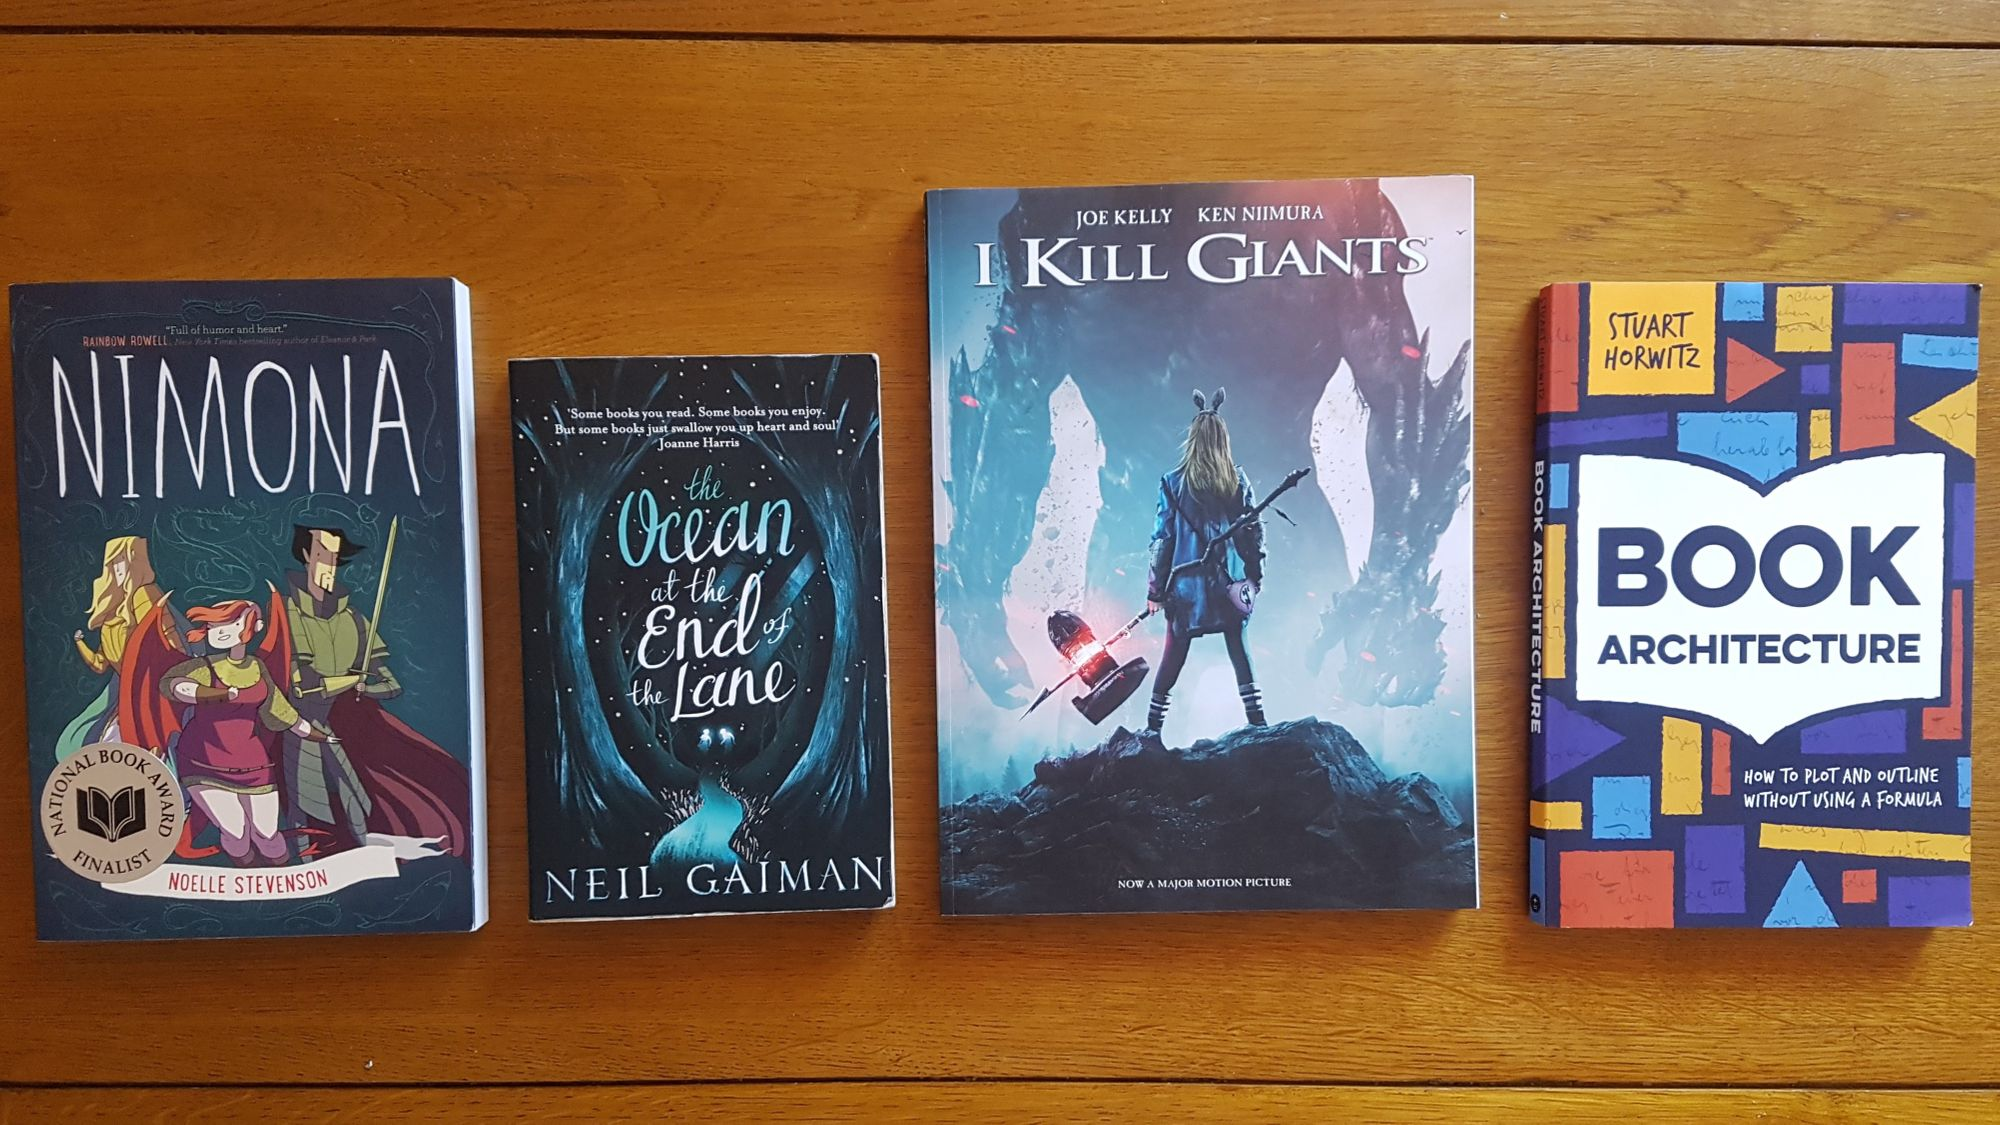 Nimona by Noelle Stevenson, Ocean at the End of the Lane by Neil Gaiman, I Kill Giants by Joe Kelly, Book Architecture by Stuart Horwitz.